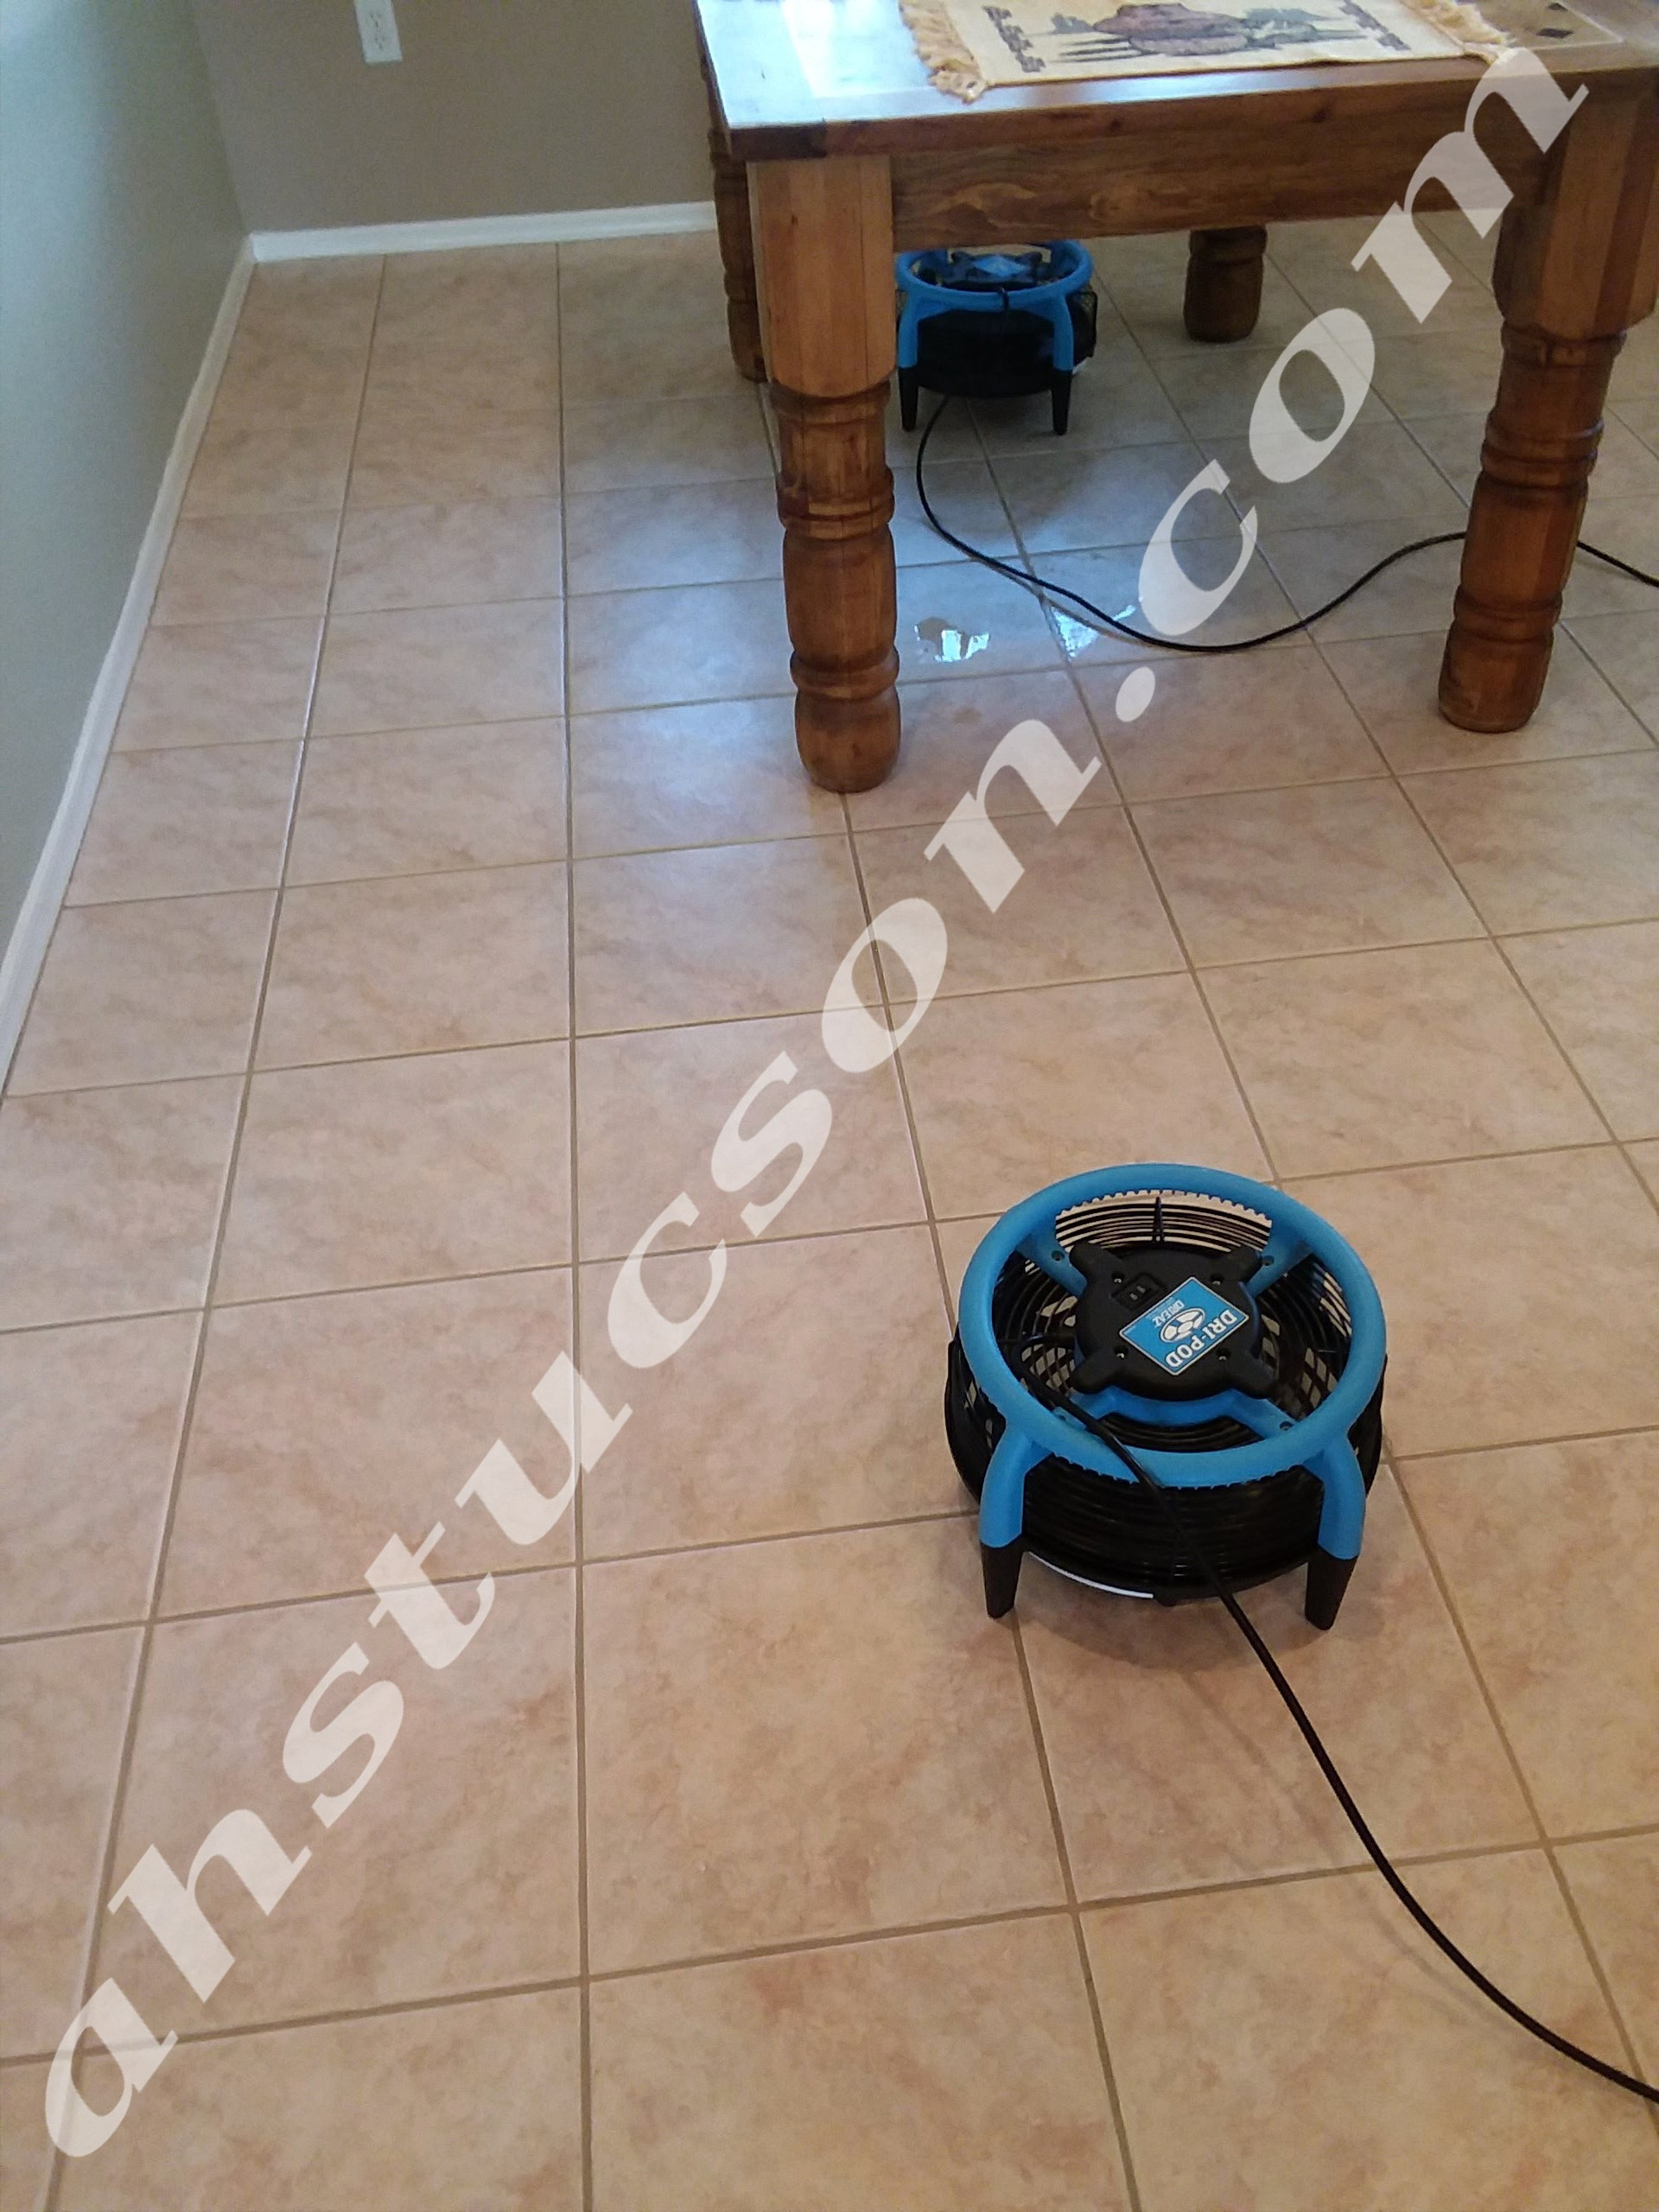 Tile-and-grout-cleaning-20180315_123712.